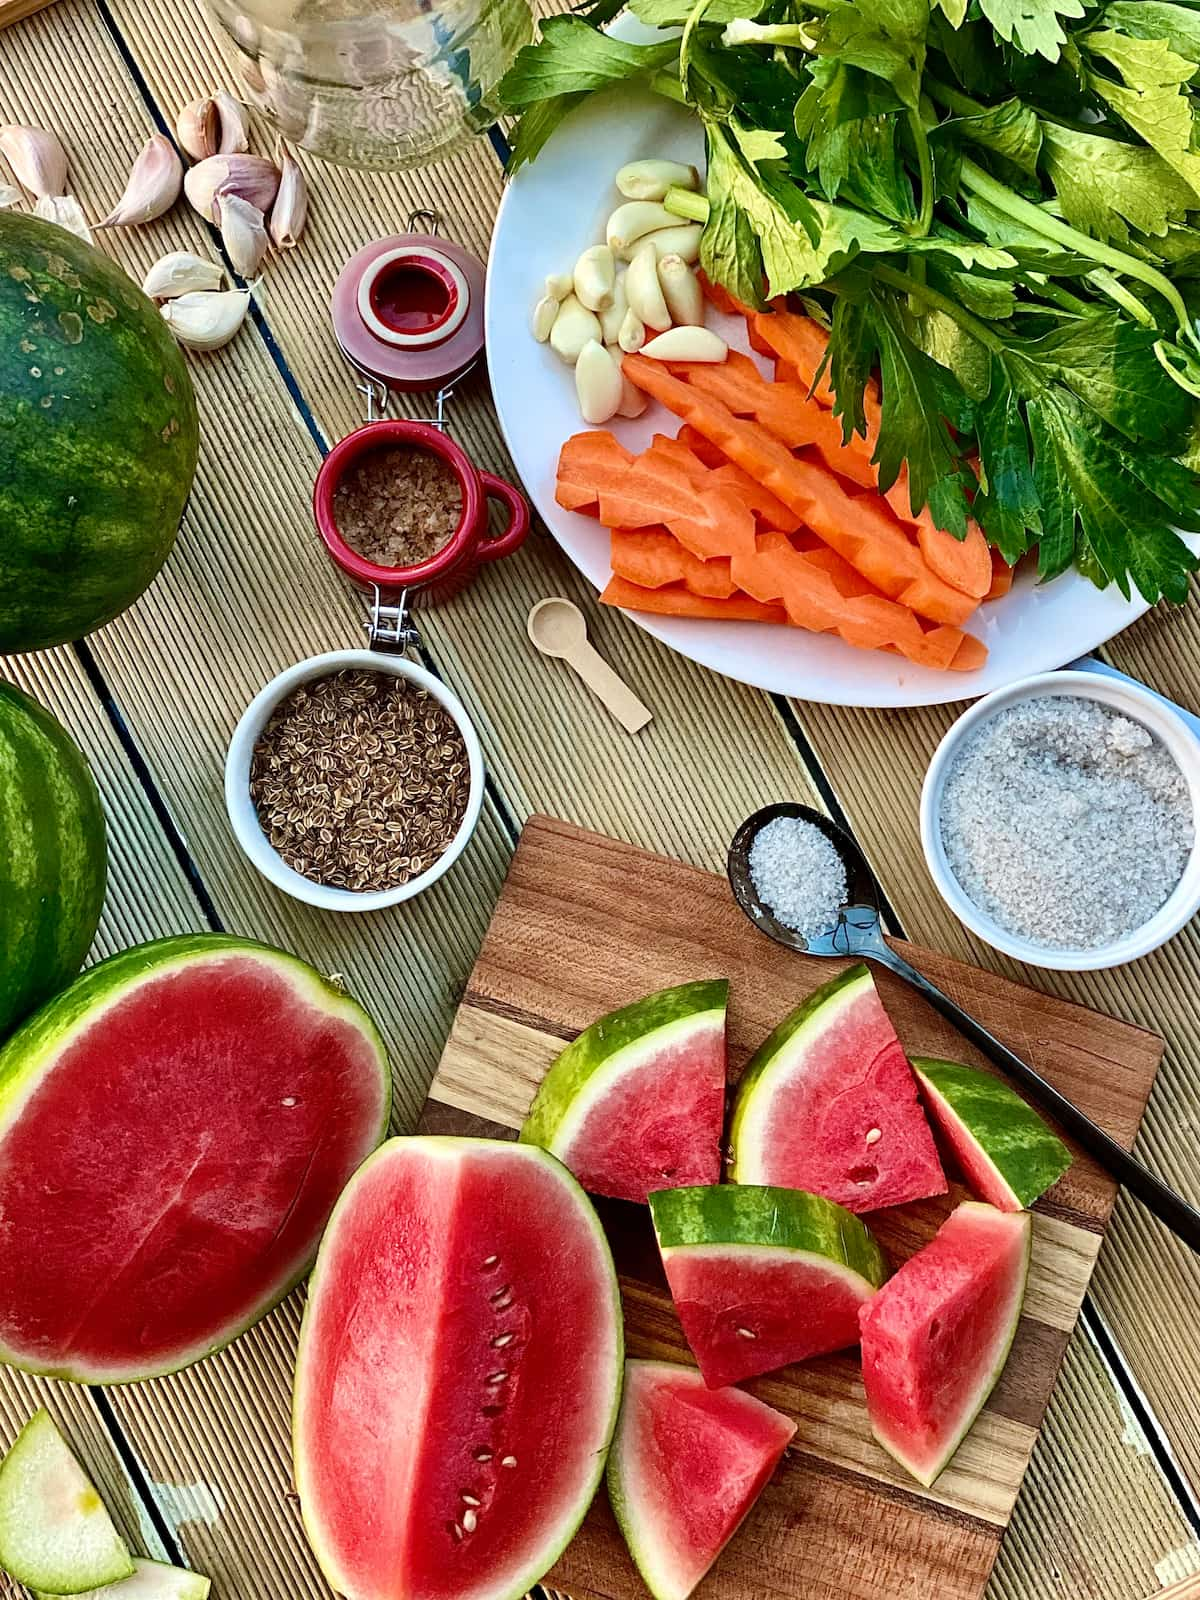 Fresh watermelon sliced and quartered for pickling, salt in a tiny dish, dill seeds and carrot, garlic cloves, celery leaves, on a white plate